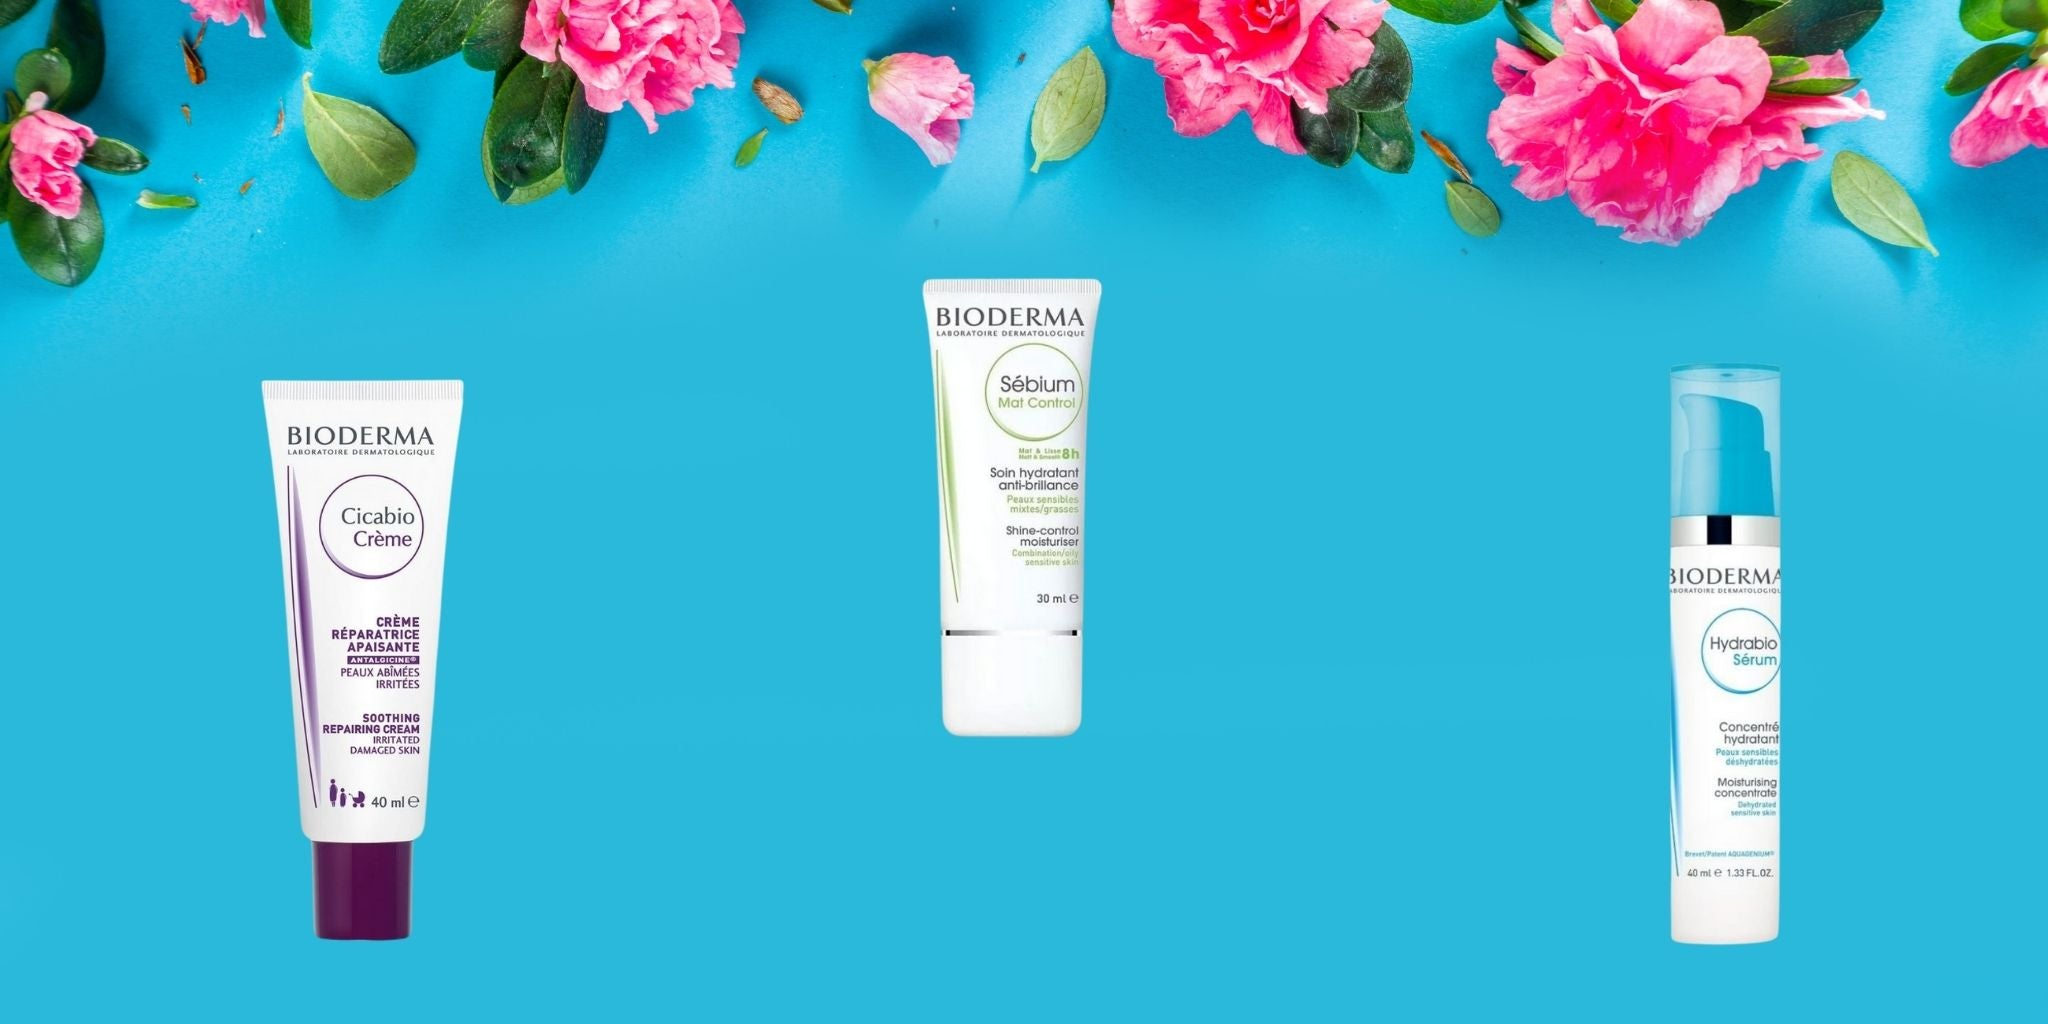 where to buy bioderma products